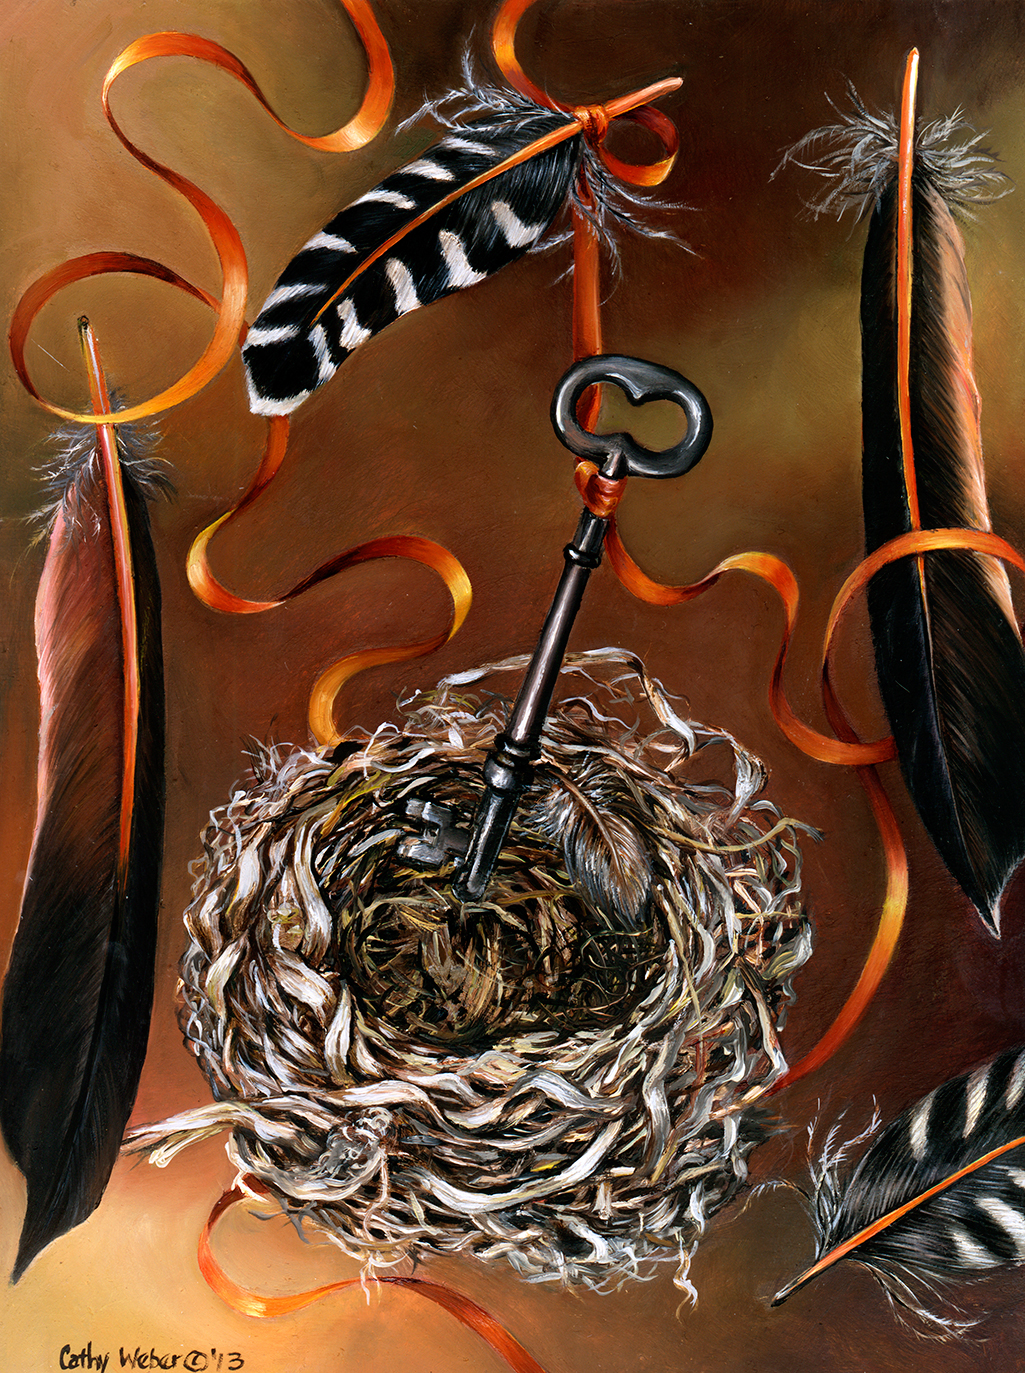 13.017 - feather - key - nest - cathy weber - artist - oil painting - objects - biological objects - ribbon